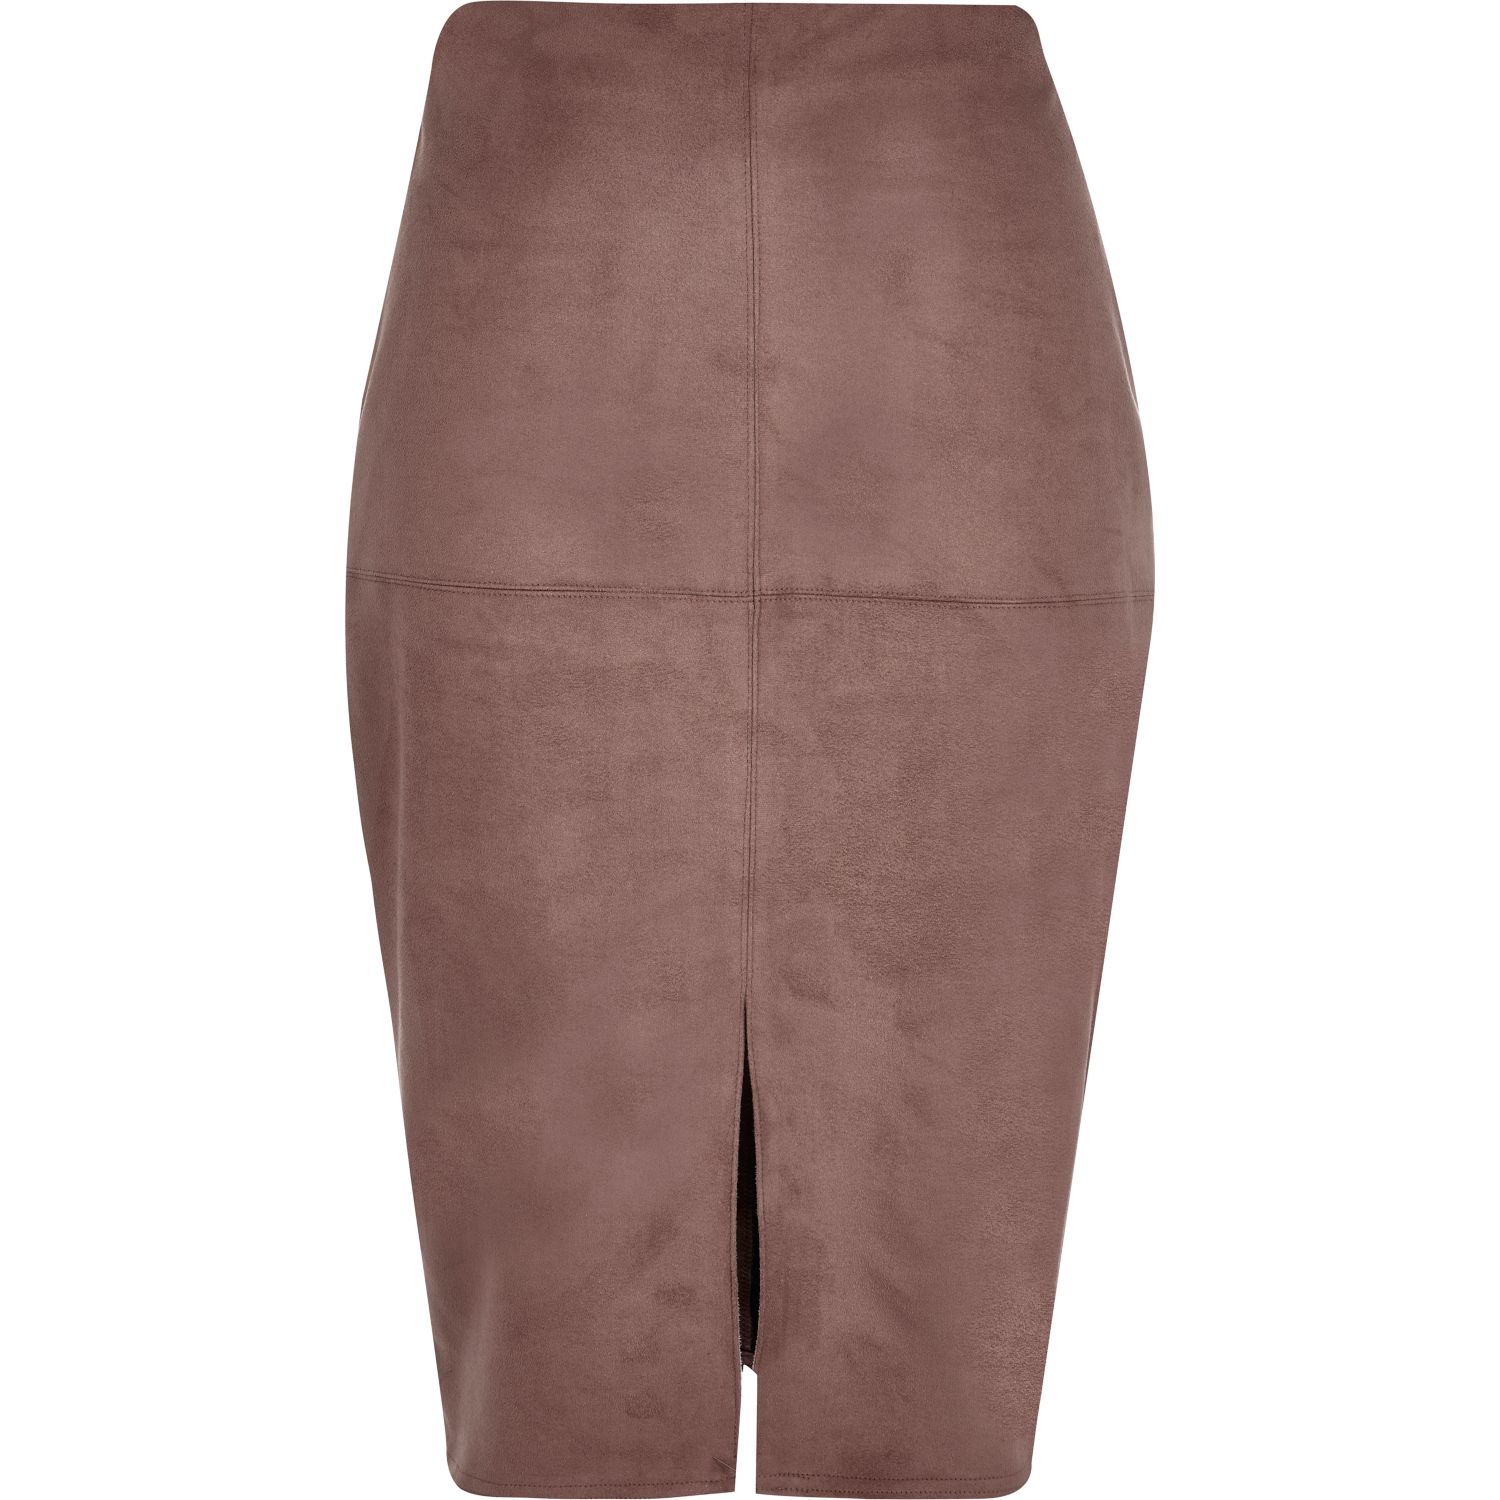 986d3588d Lyst - River Island Brown Faux-suede Split Front Pencil Skirt in Brown